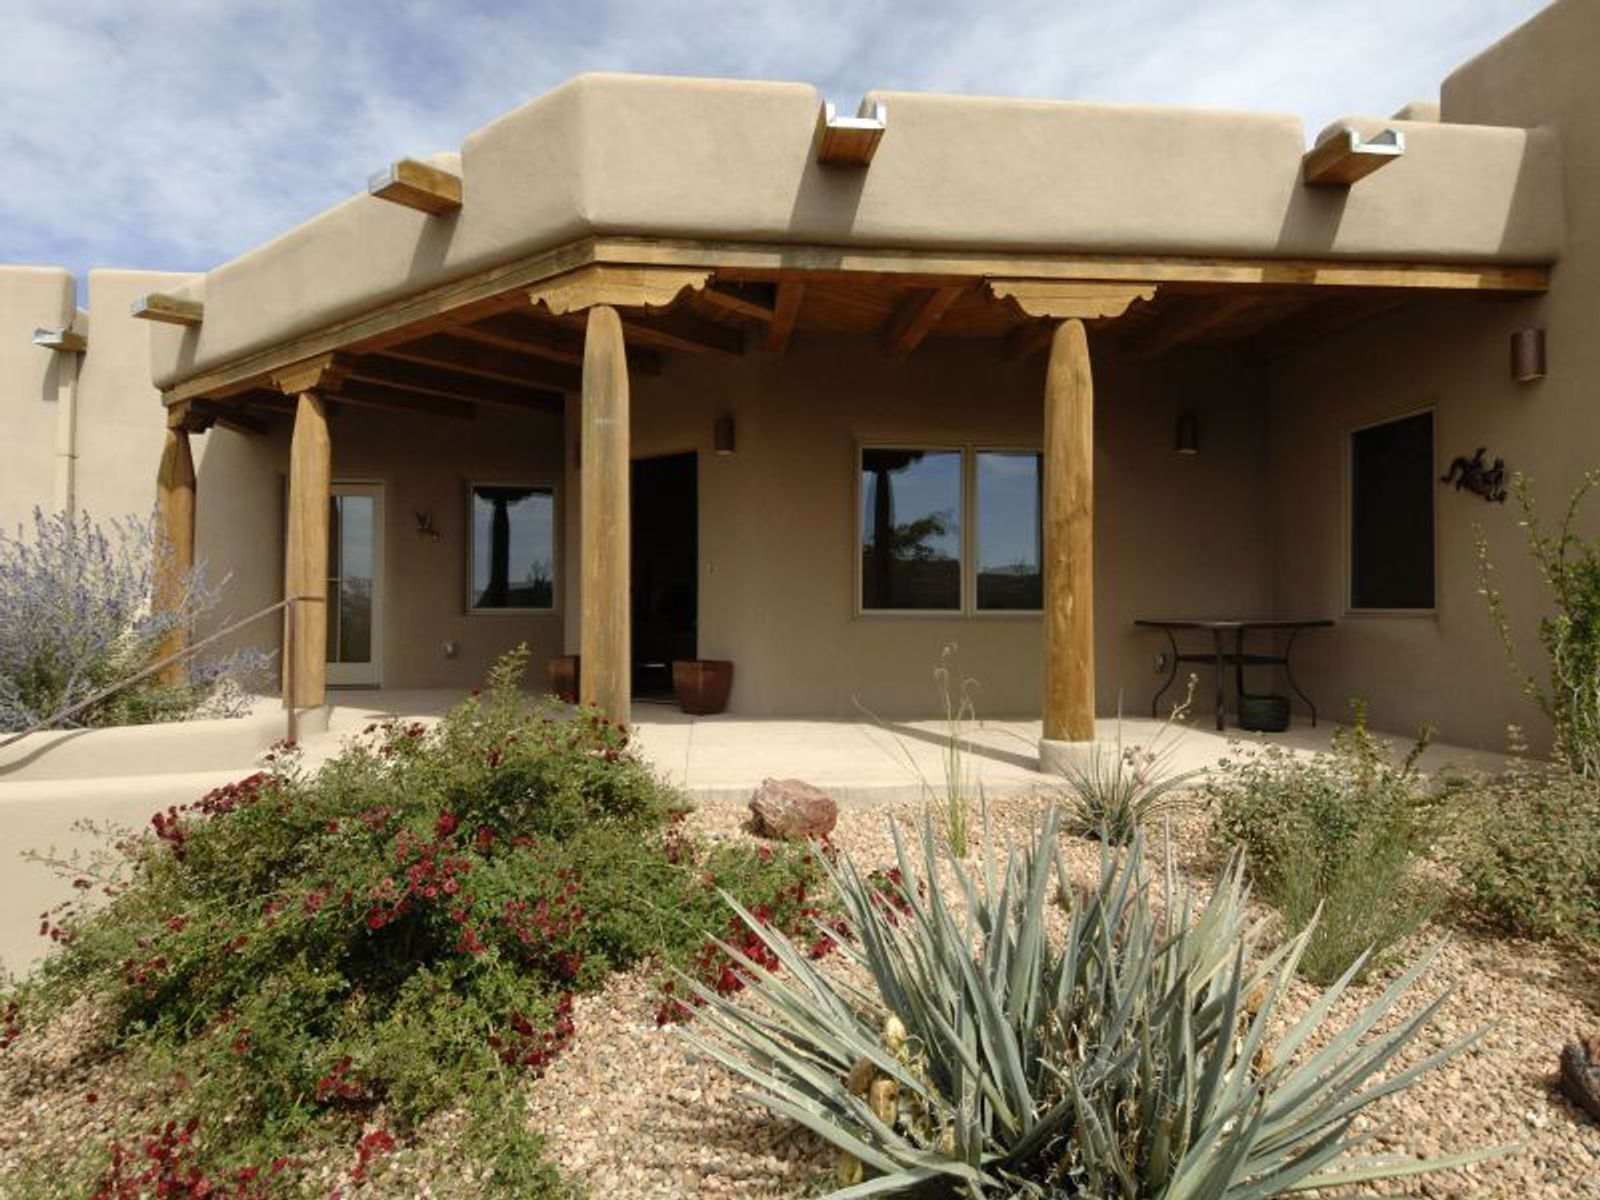 8  Camino Botanica, Santa Fe NM Single Family Home - Santa Fe Real Estate